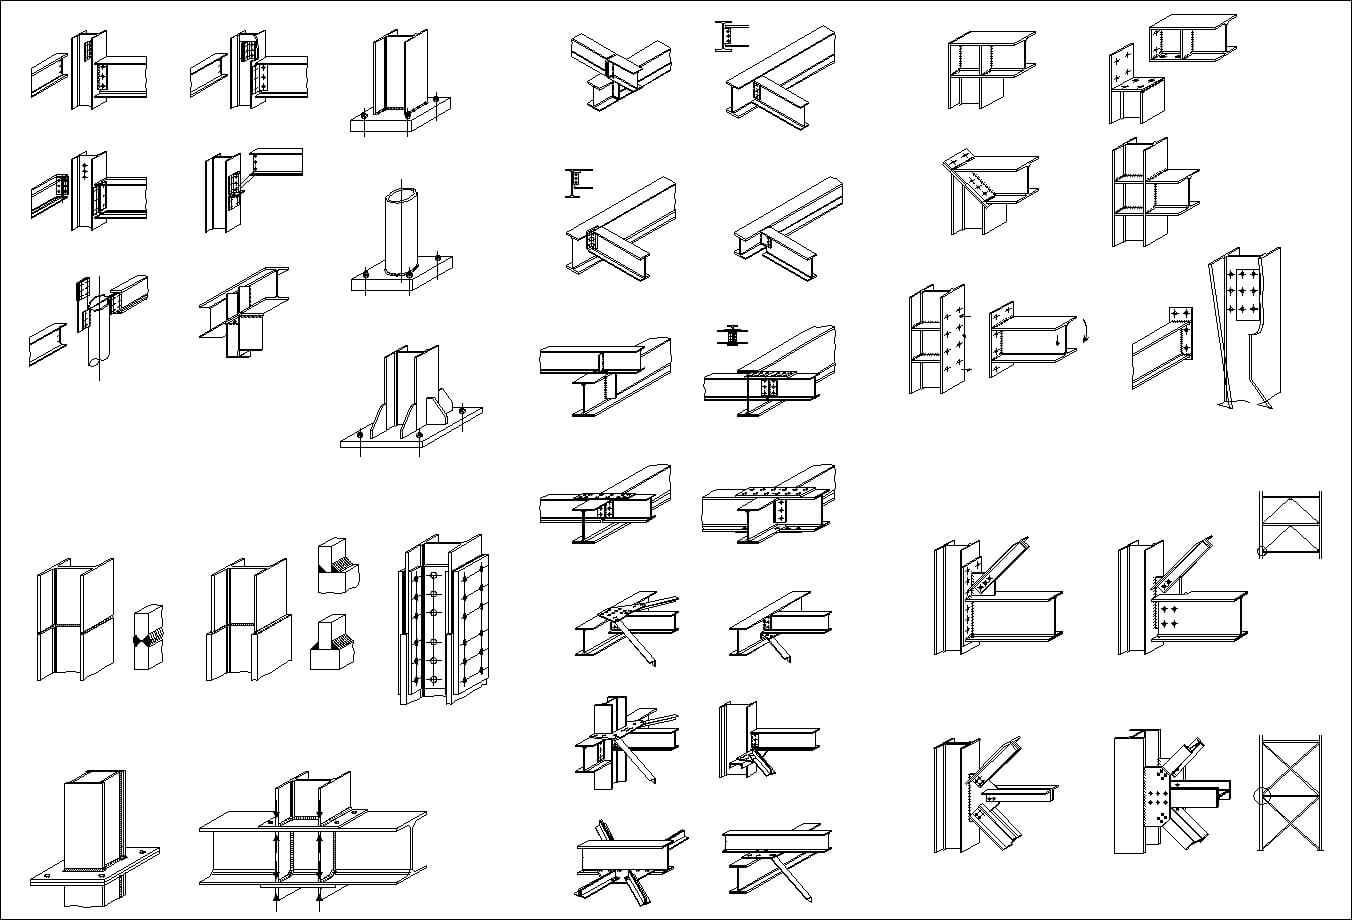 Steel Structure Details 1 Architectural Autocad Drawings